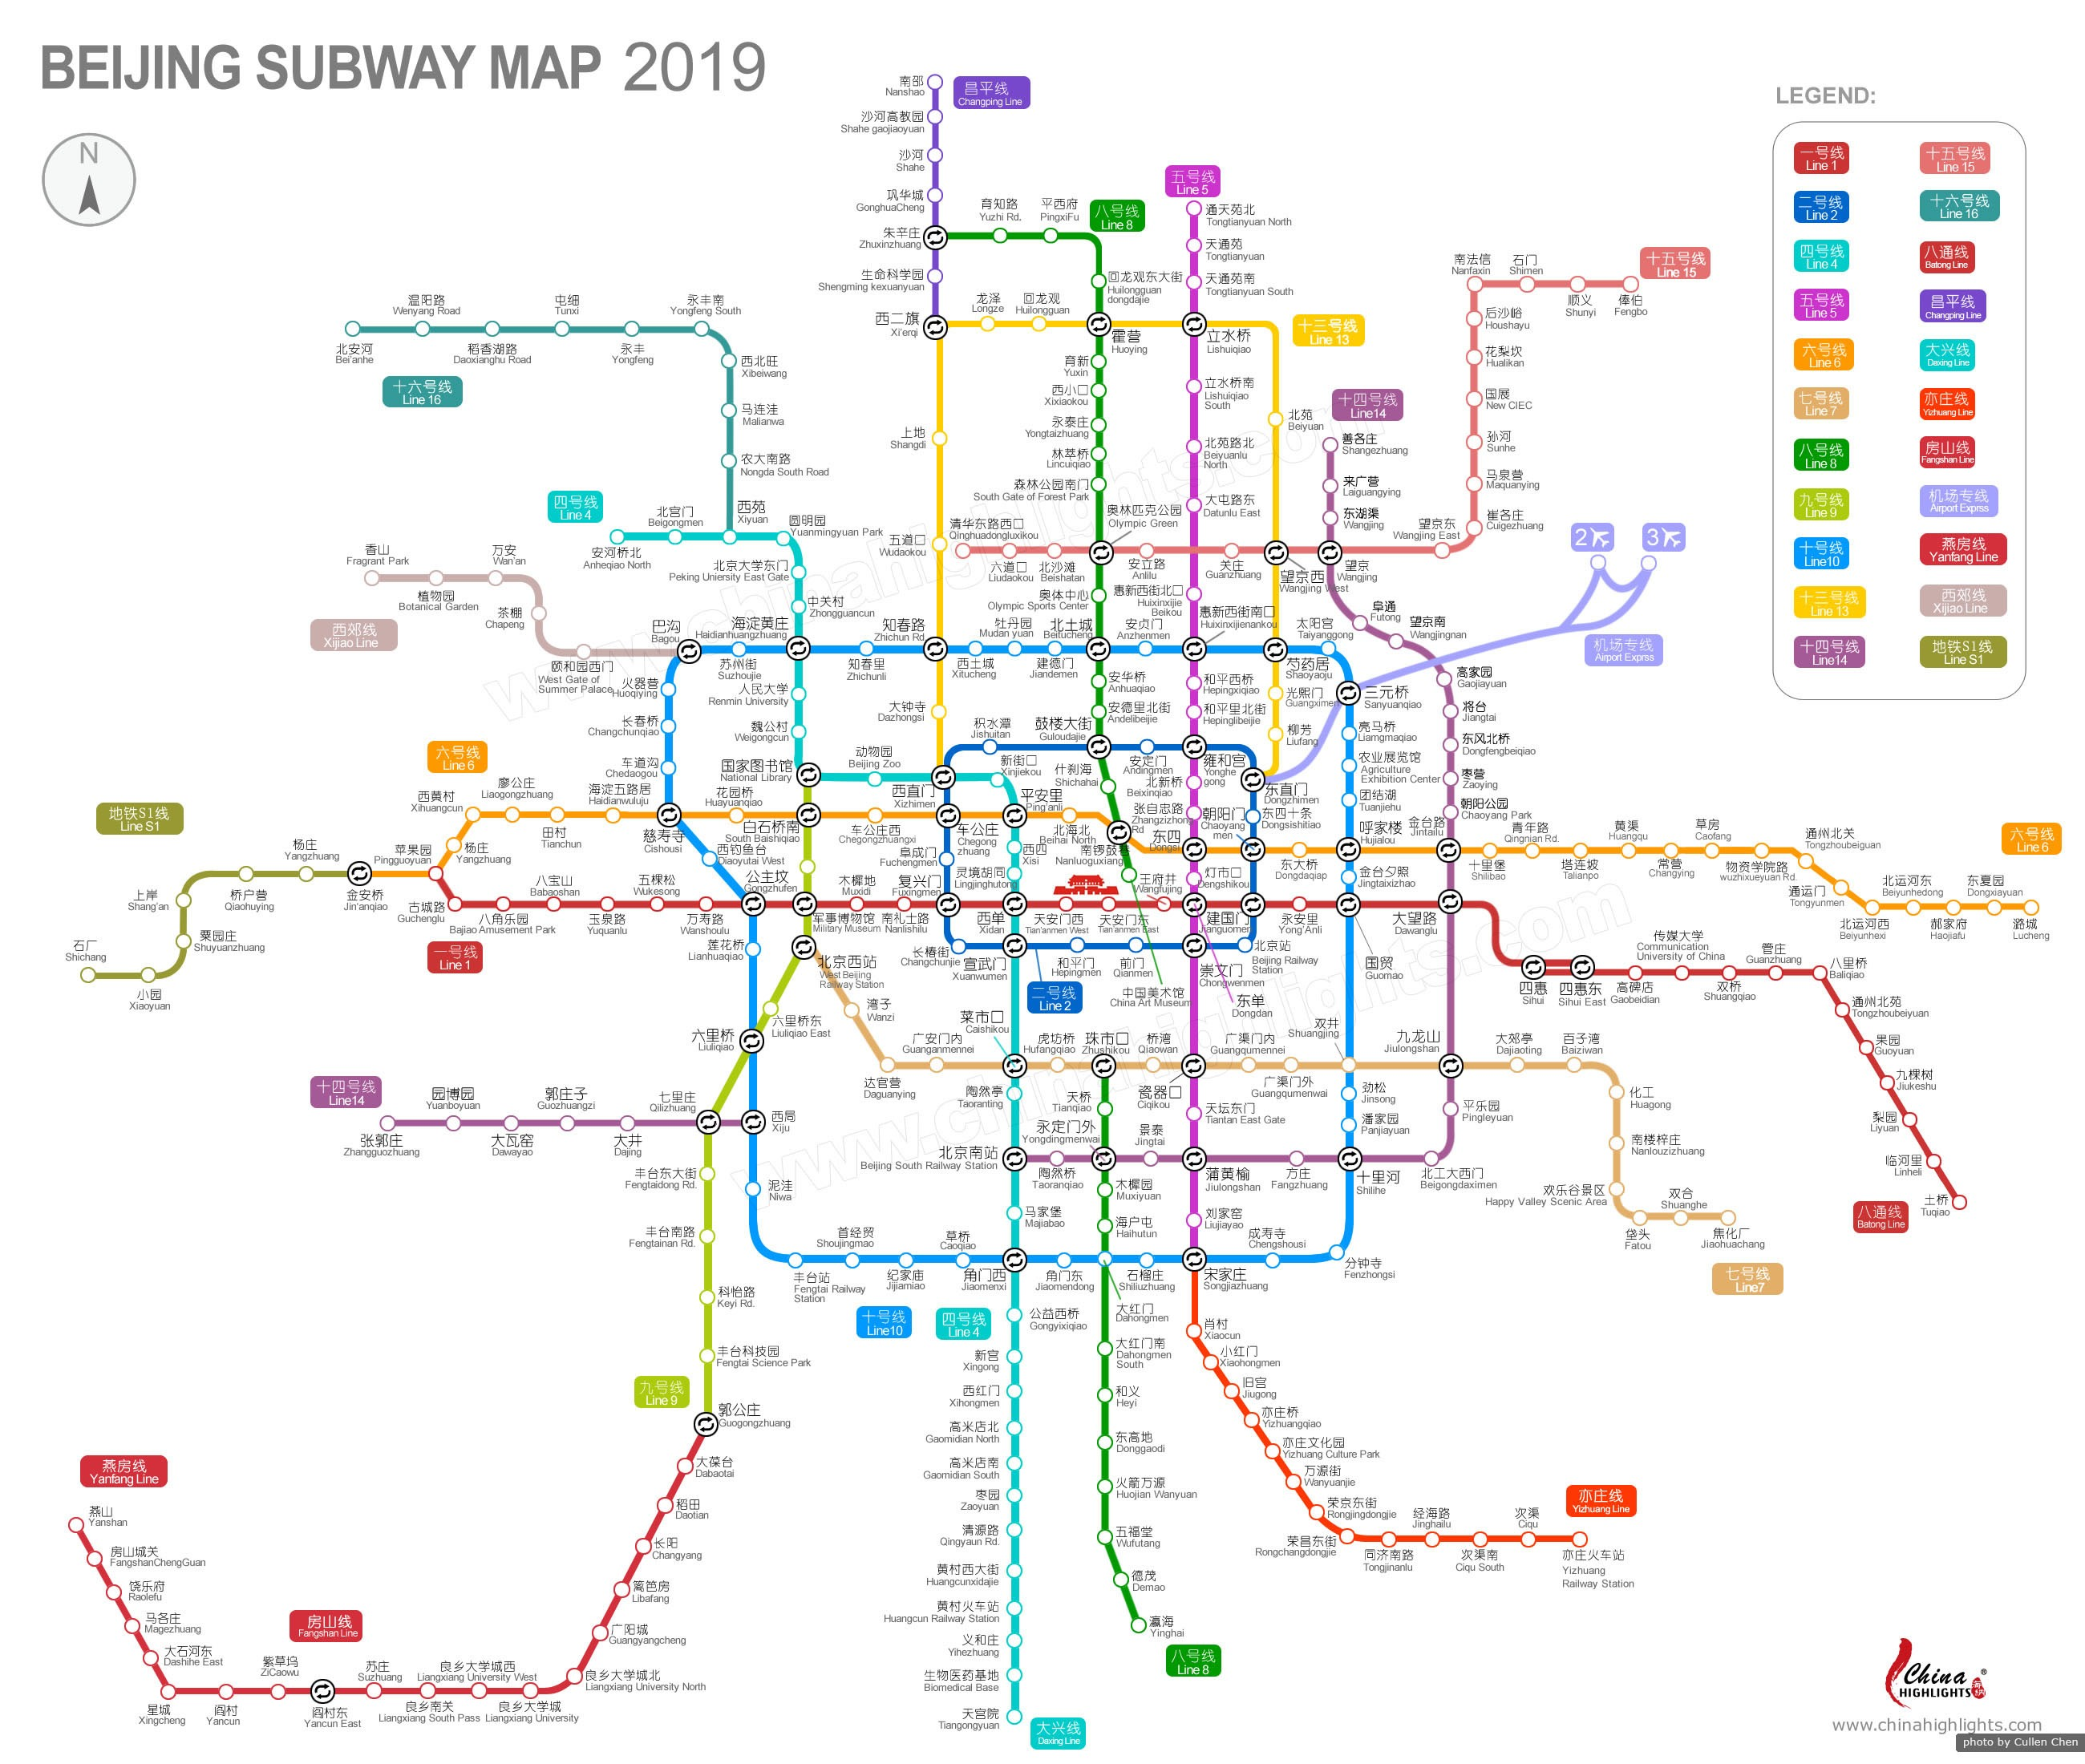 Beijing Subway Map 2019, Latest Maps of Beijing Subway and Stations